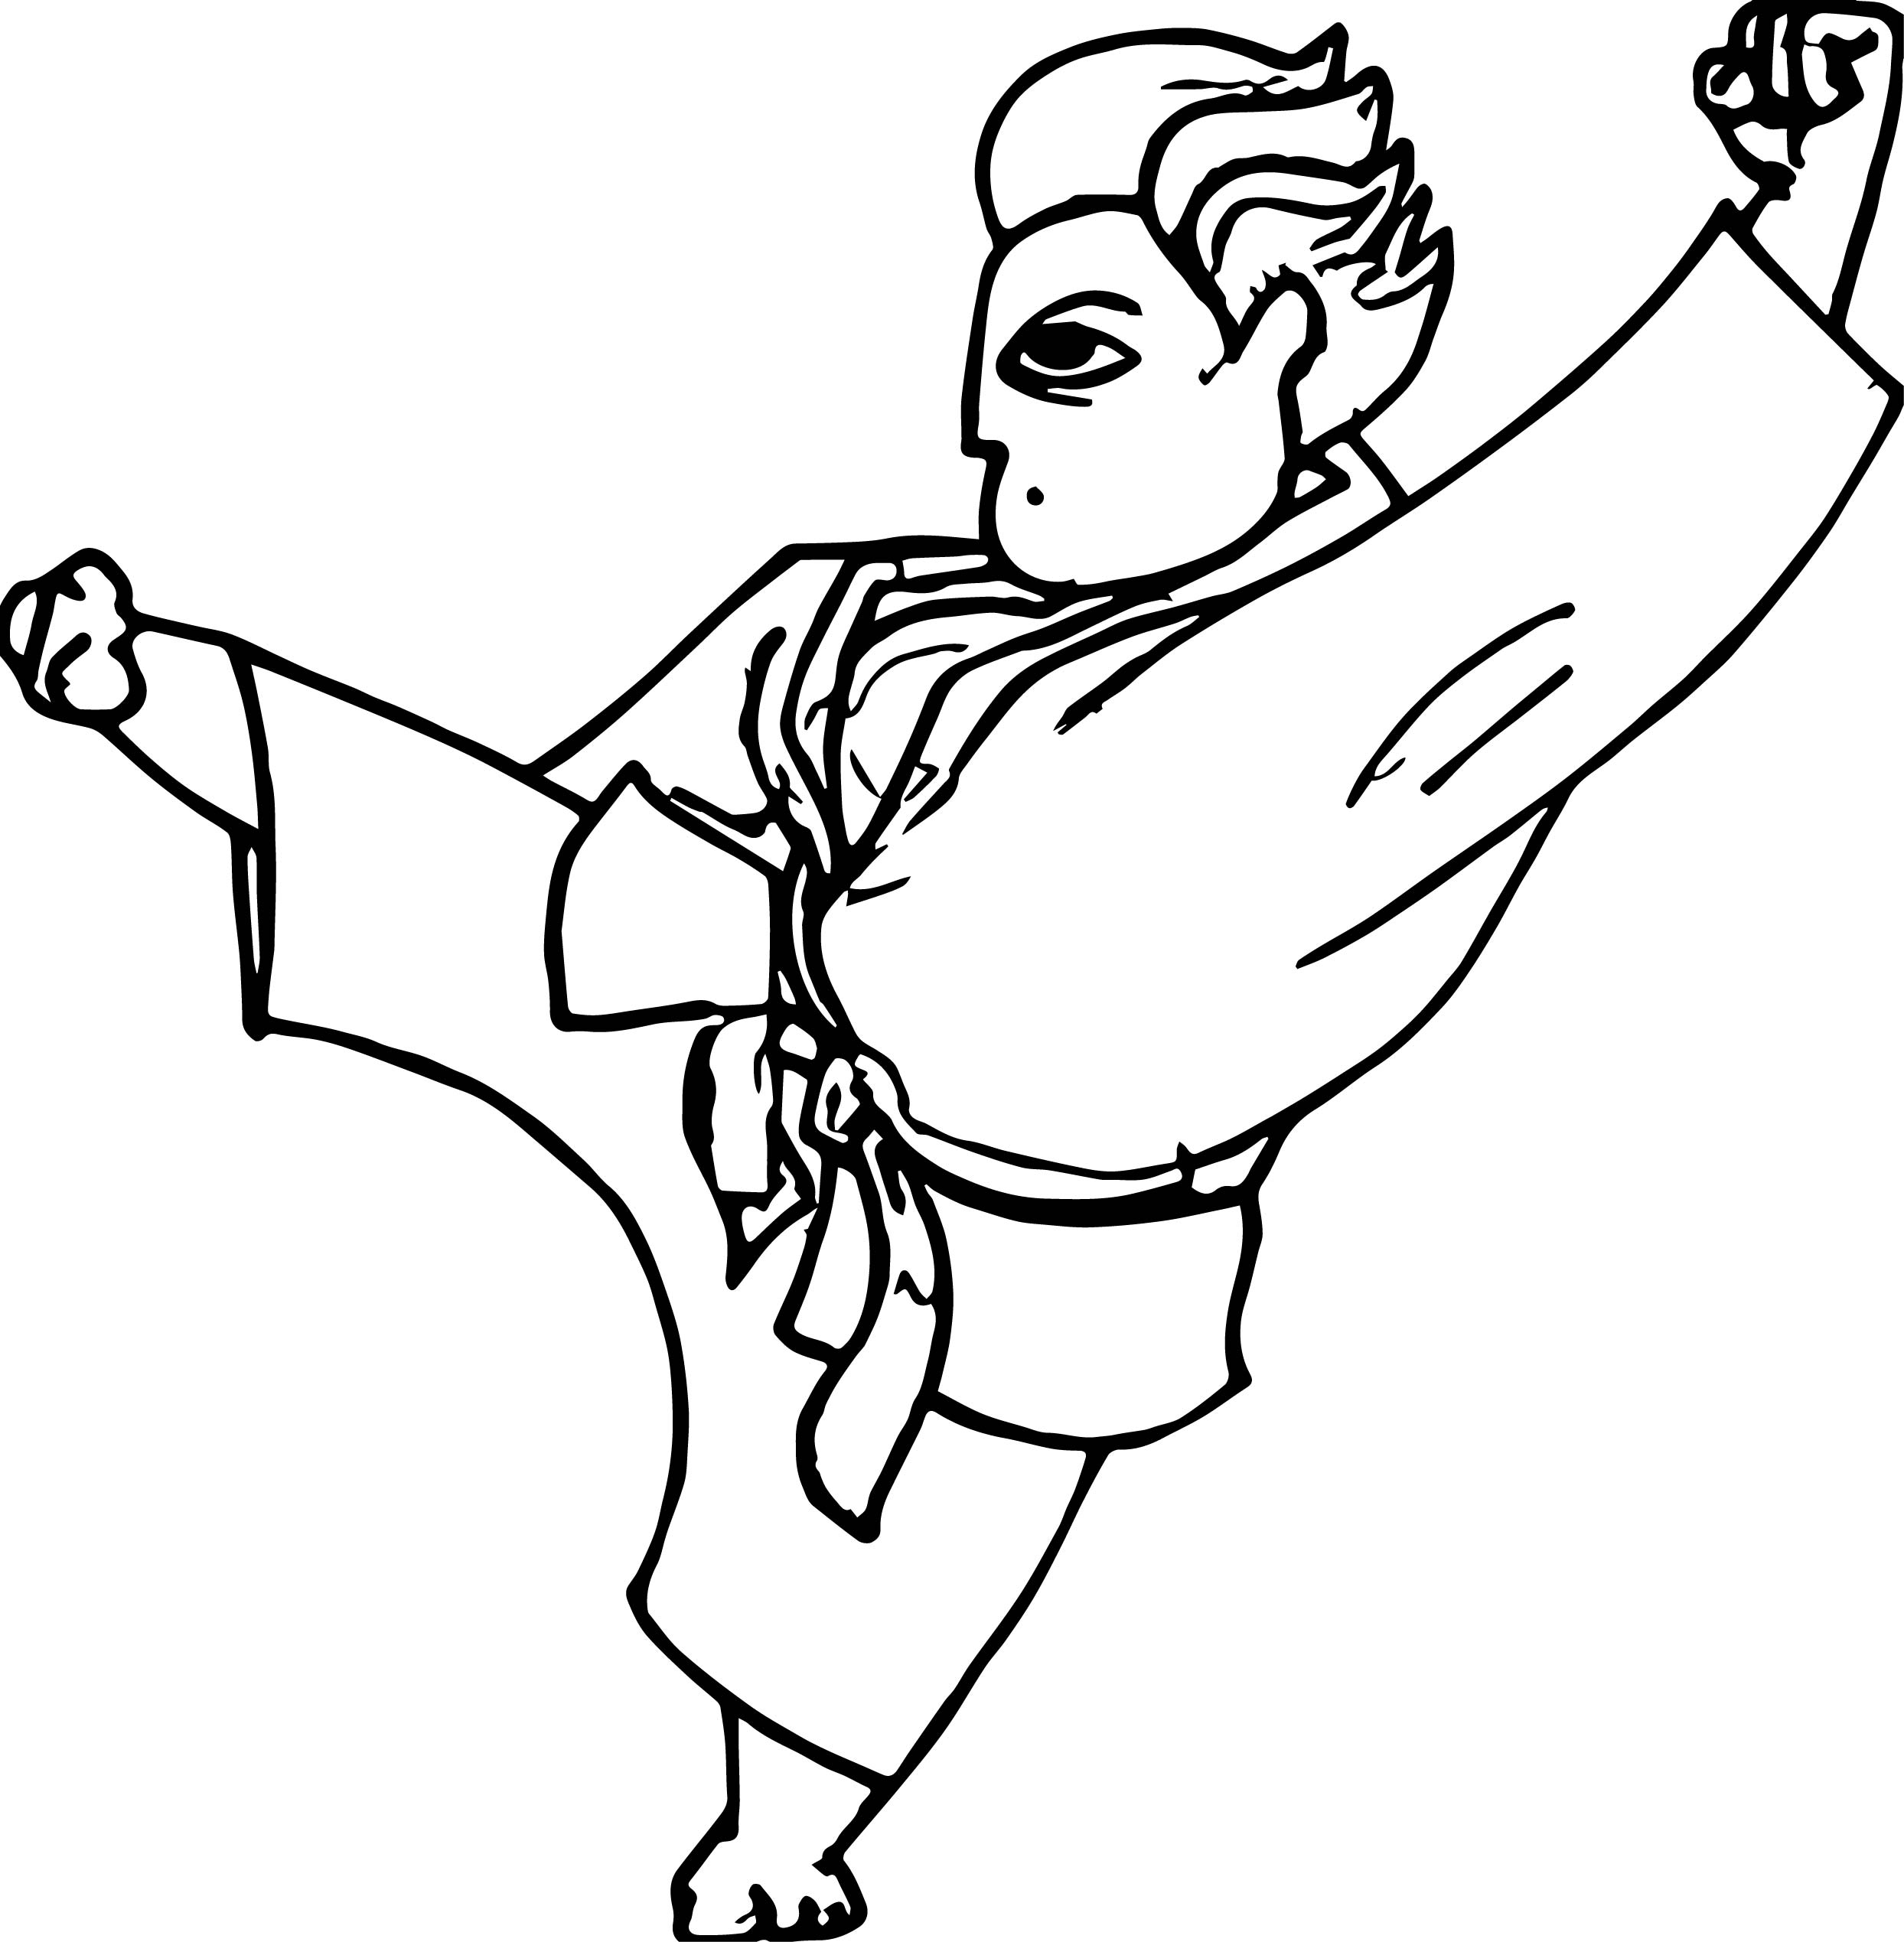 Anime Fighting Man Coloring Page